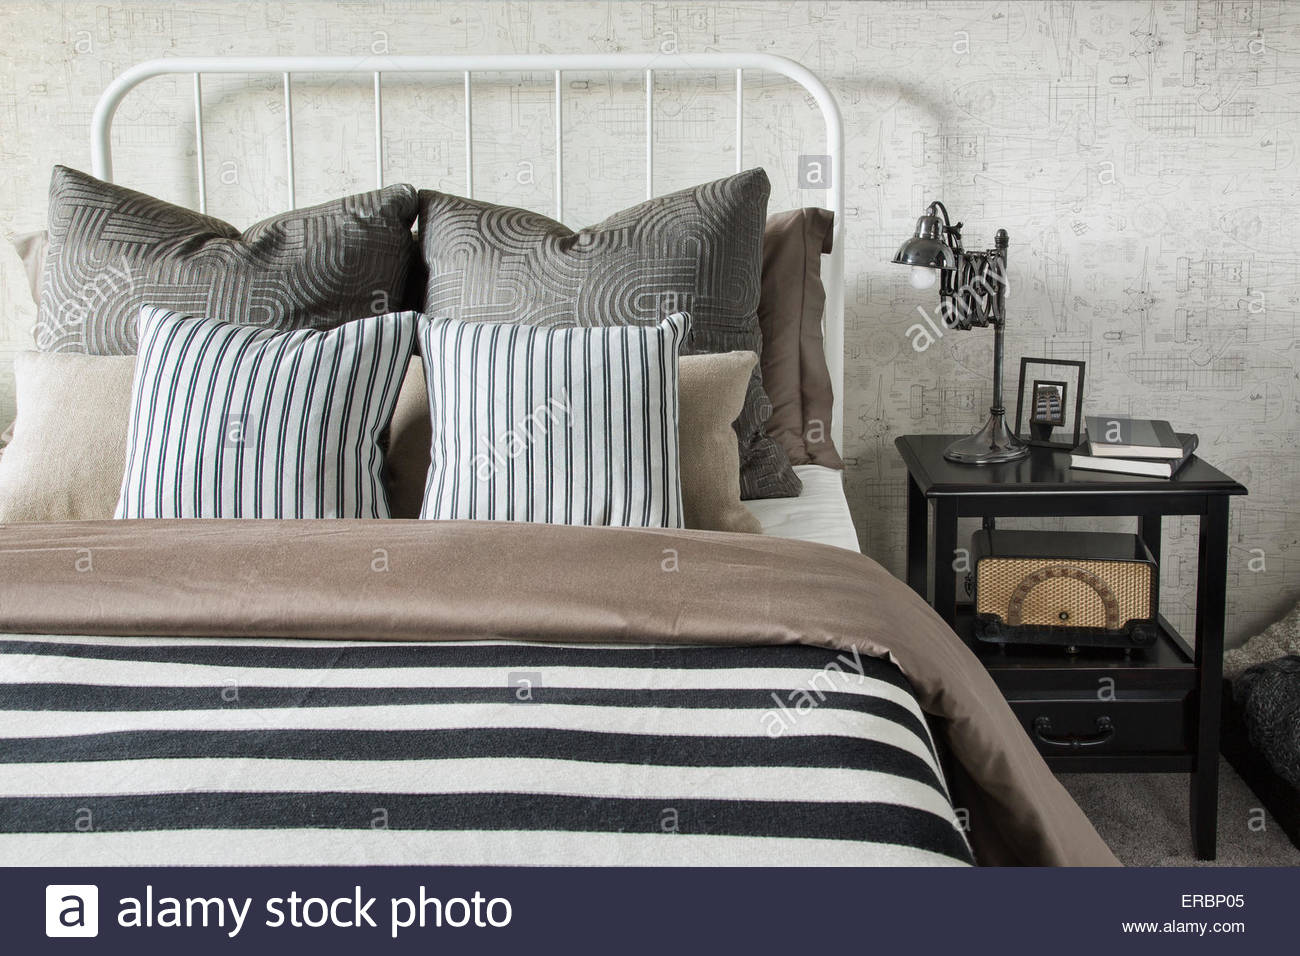 Striped and patterned pillows and blanket on bed - Stock Image